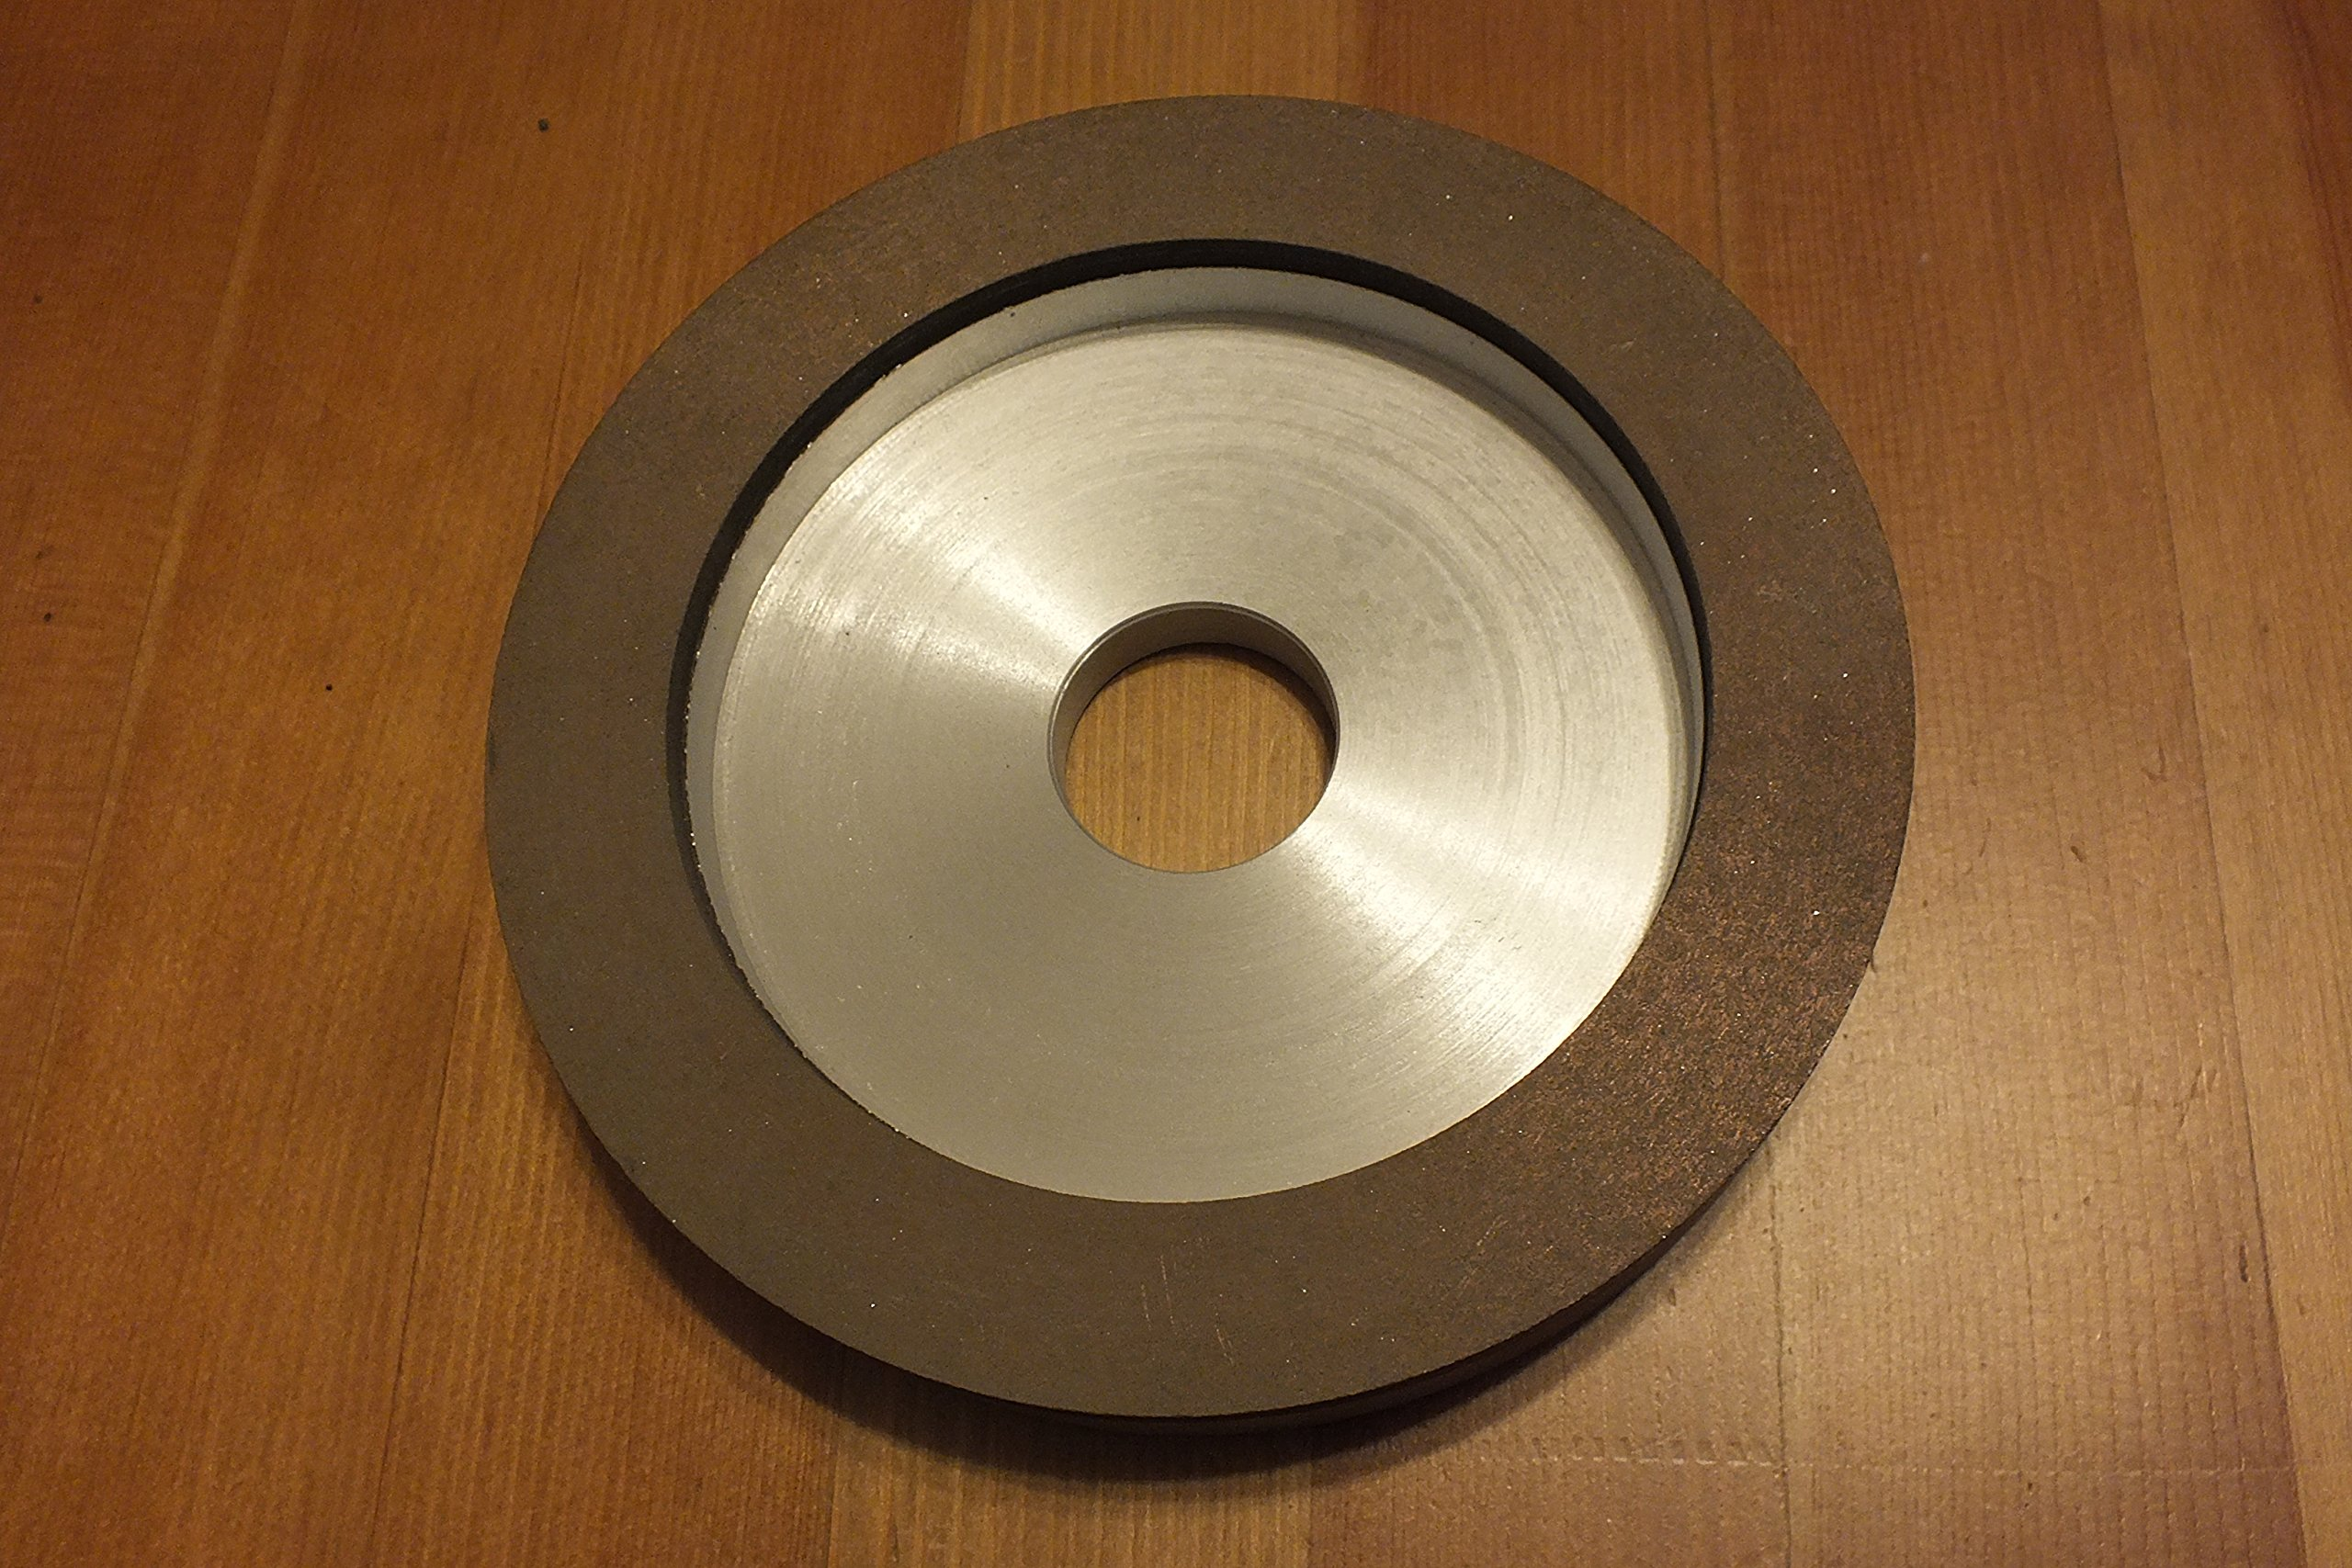 6 Inch Resin Bond Diamond Wheel 6'' 12v2d150 Diamond Layer 5 X 20mm by TechDiamondTools